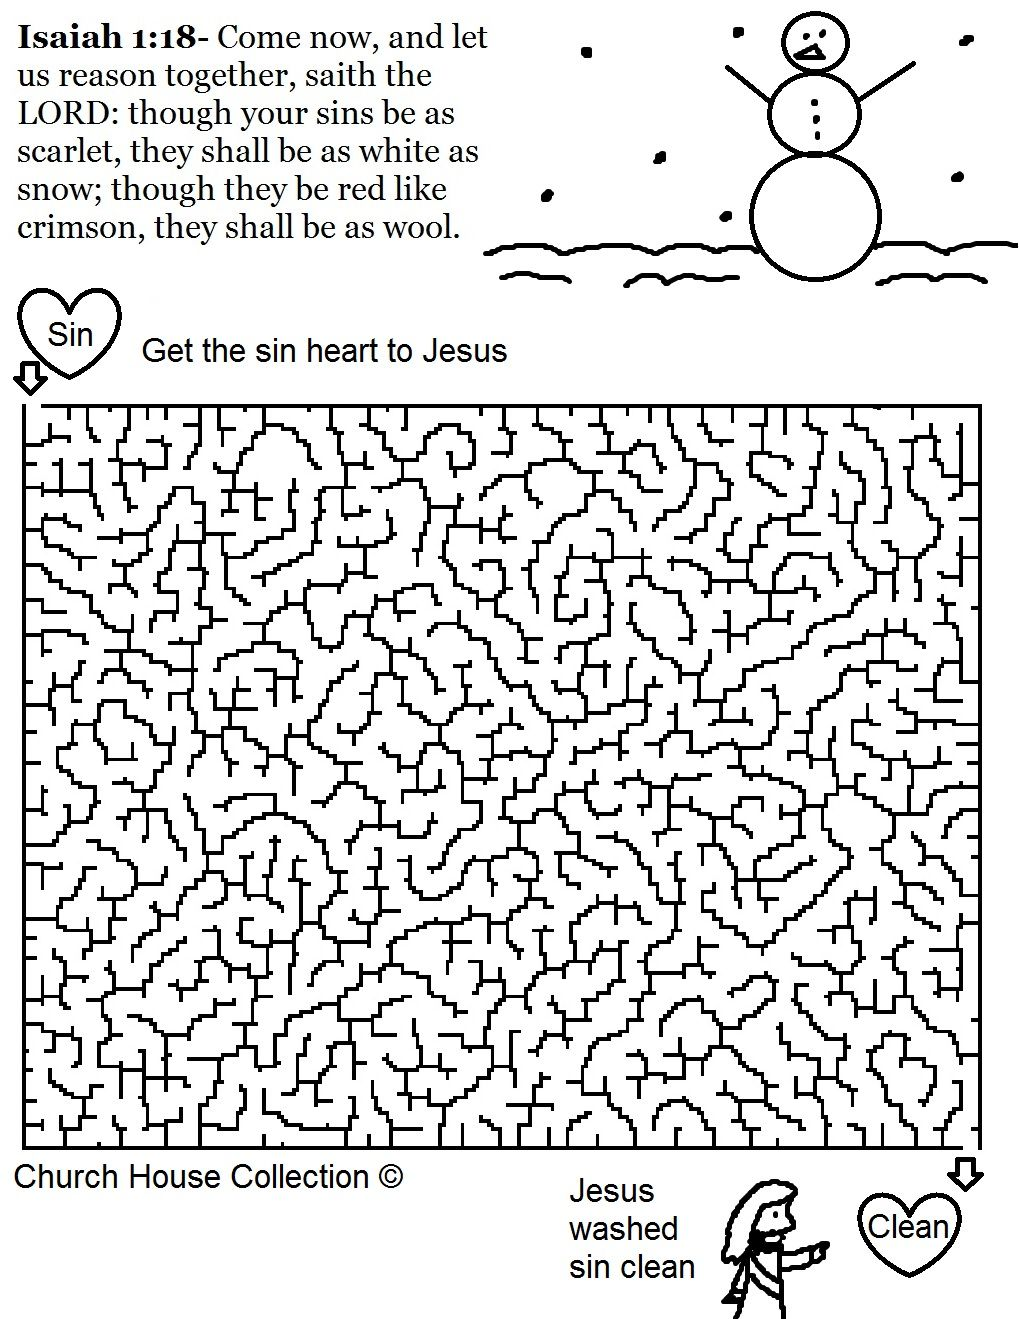 Free Christmas Snowman Isaiah 118 Printable Maze Template For Kids In Sunday School